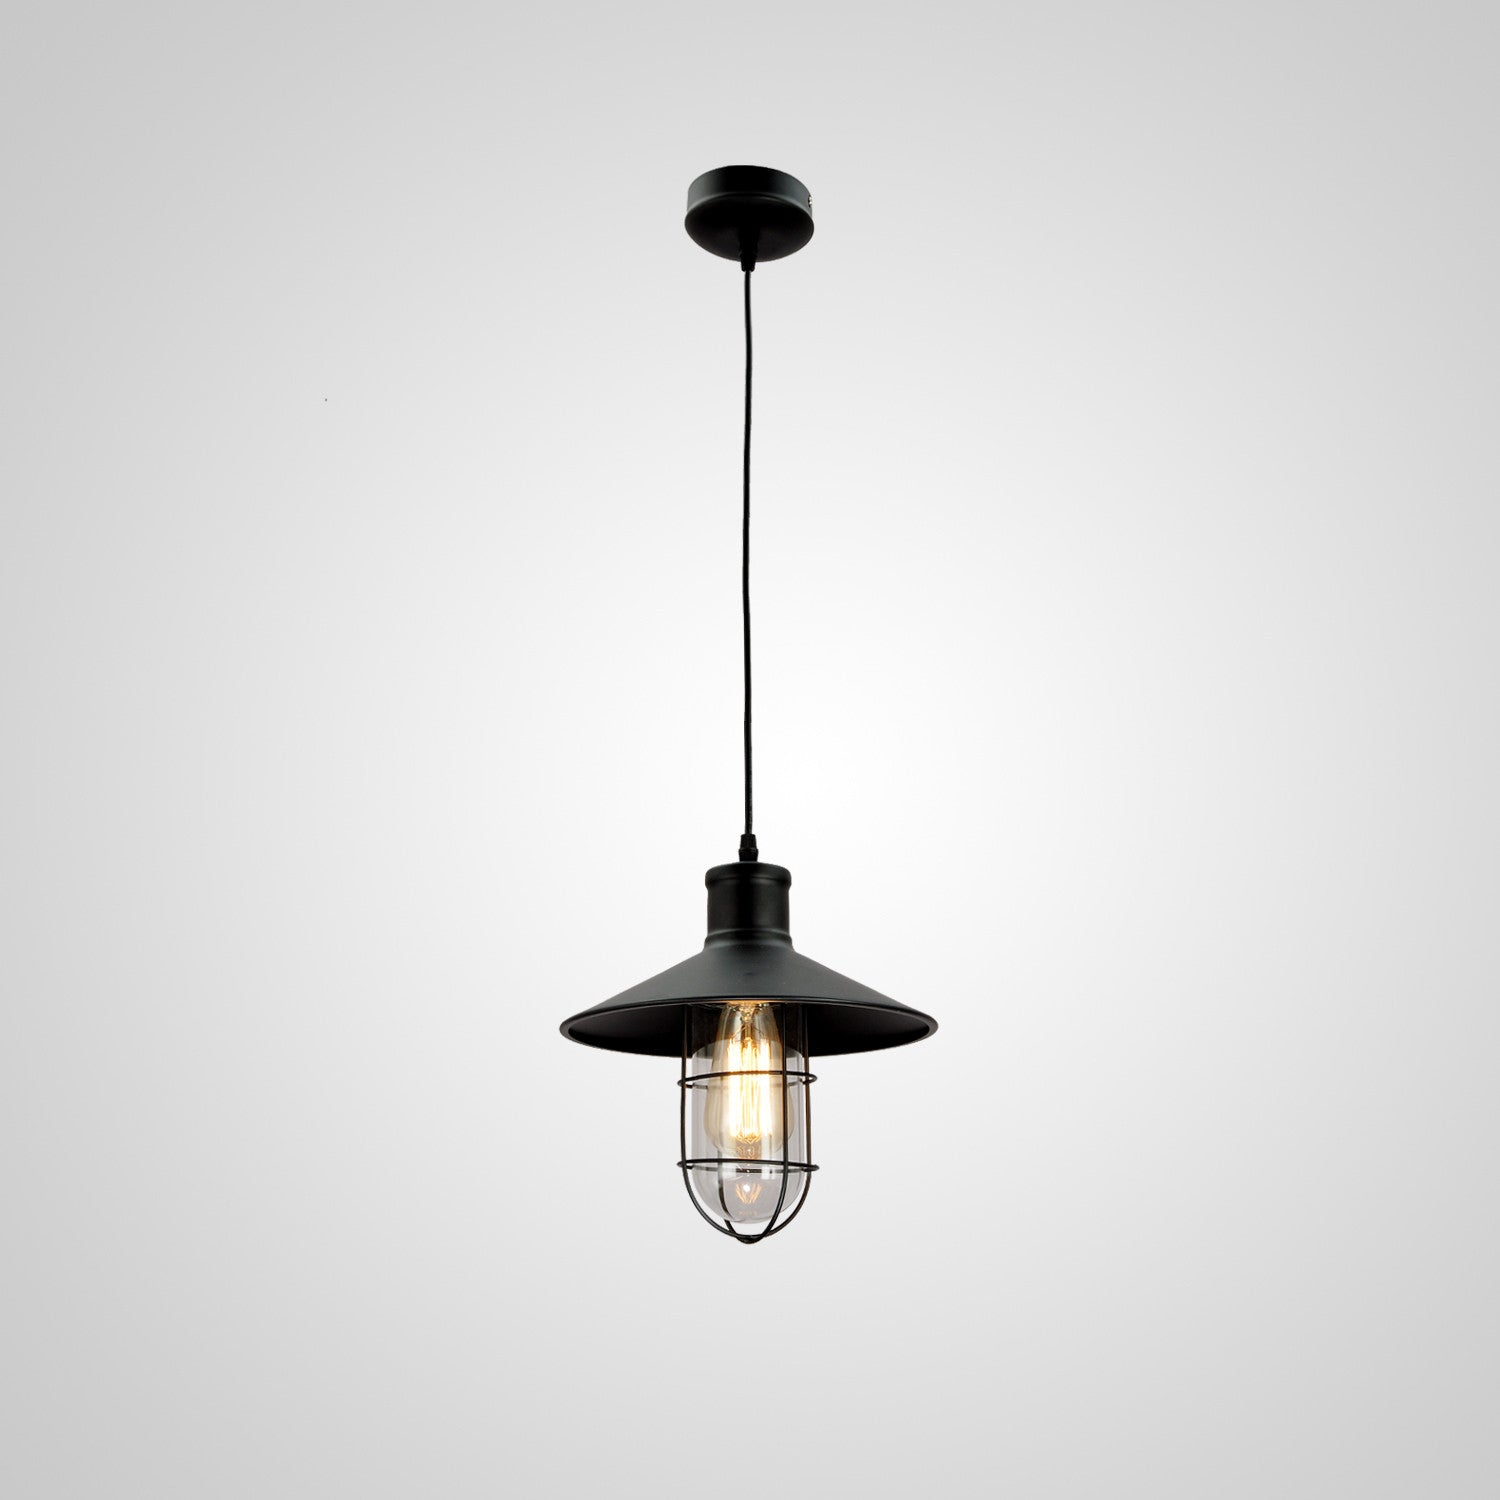 UNITARY BRAND Vintage Metal Shade Industrial Pendant Light Max 60W with 1 light Painted Finish